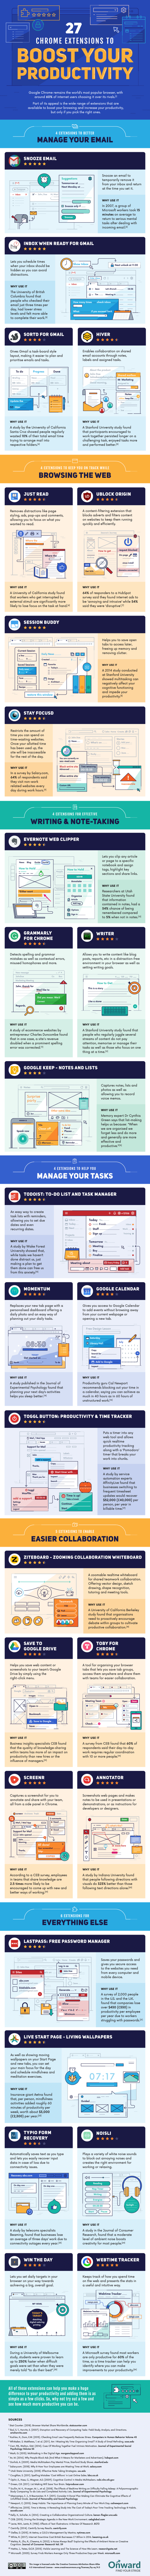 Infographic showing 27 different chrome extensions to boost productivity